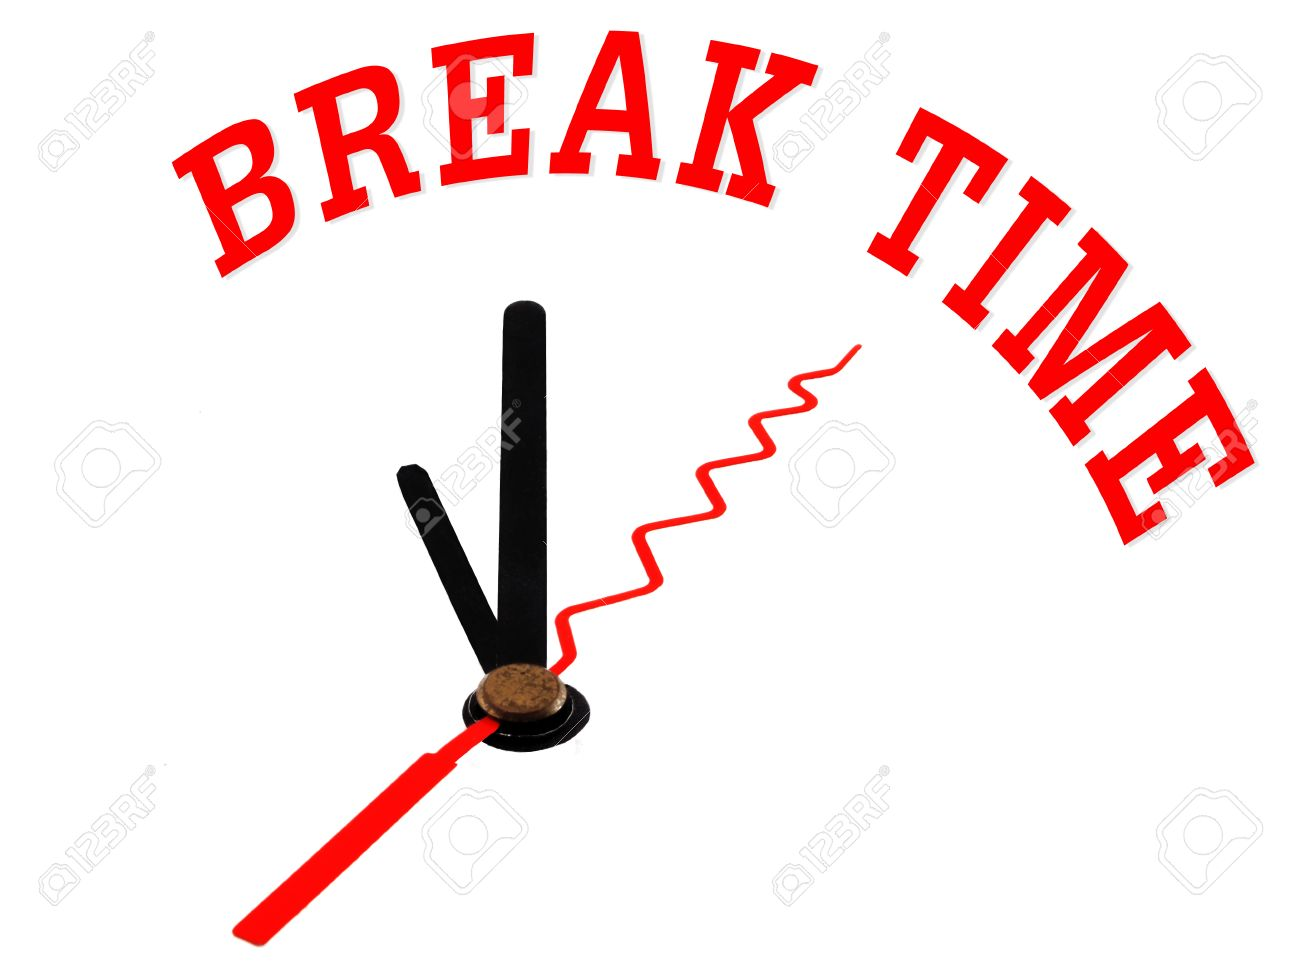 Word break clipart svg free library Break Time Clipart   Free download best Break Time Clipart ... svg free library